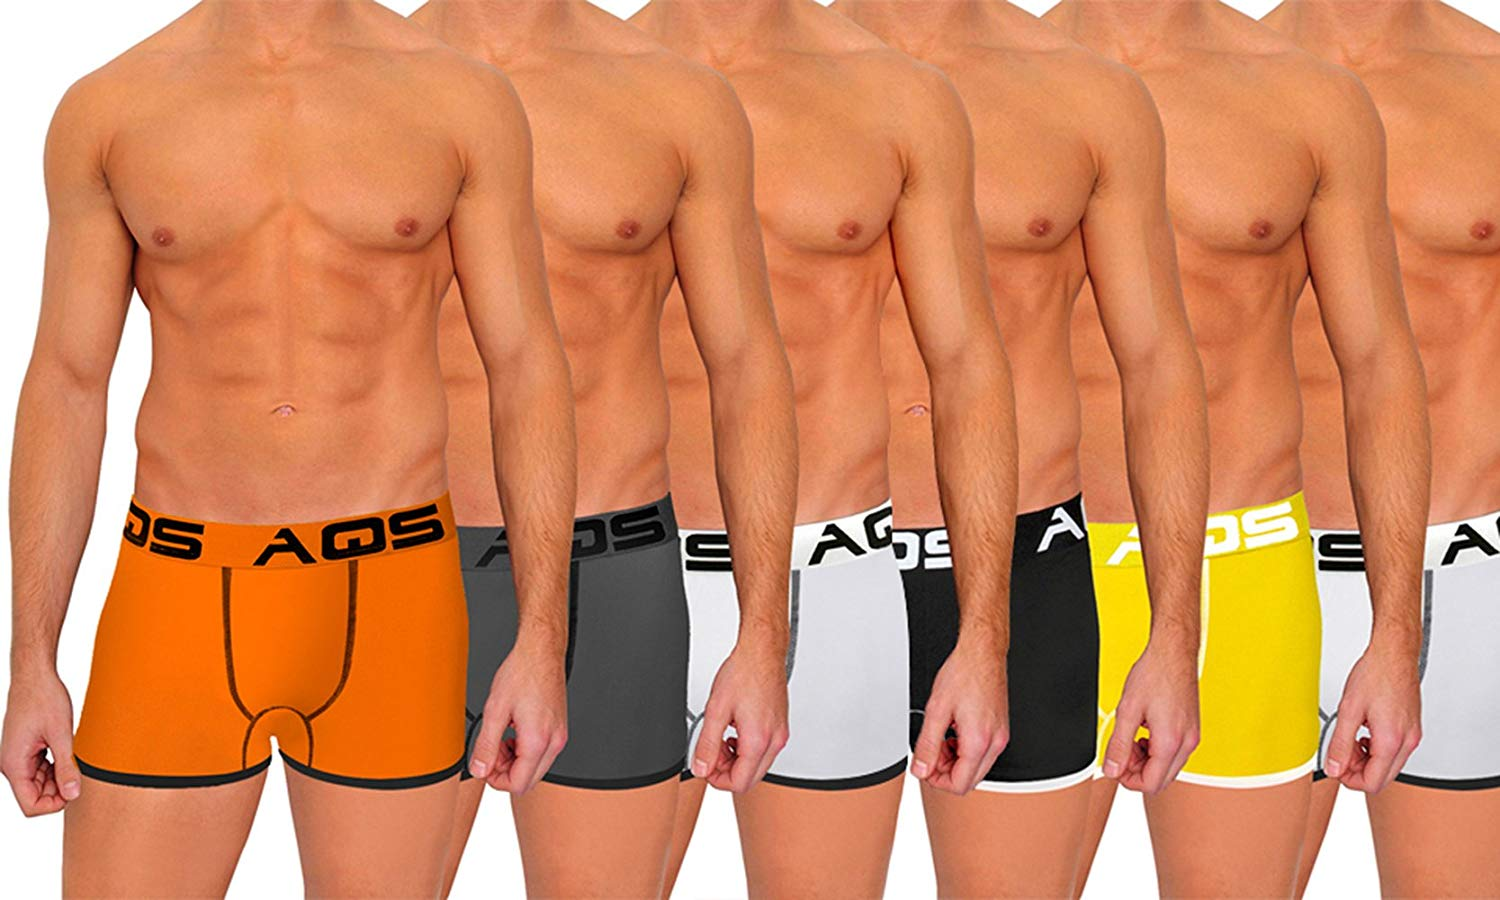 aqs Men's Threaded/Fitted Boxer Briefs - Org/Blk, Gry/Blk, WHT/Blk + YLW/WHT, Blk/WHT, WHT/Blk - 6-Pack